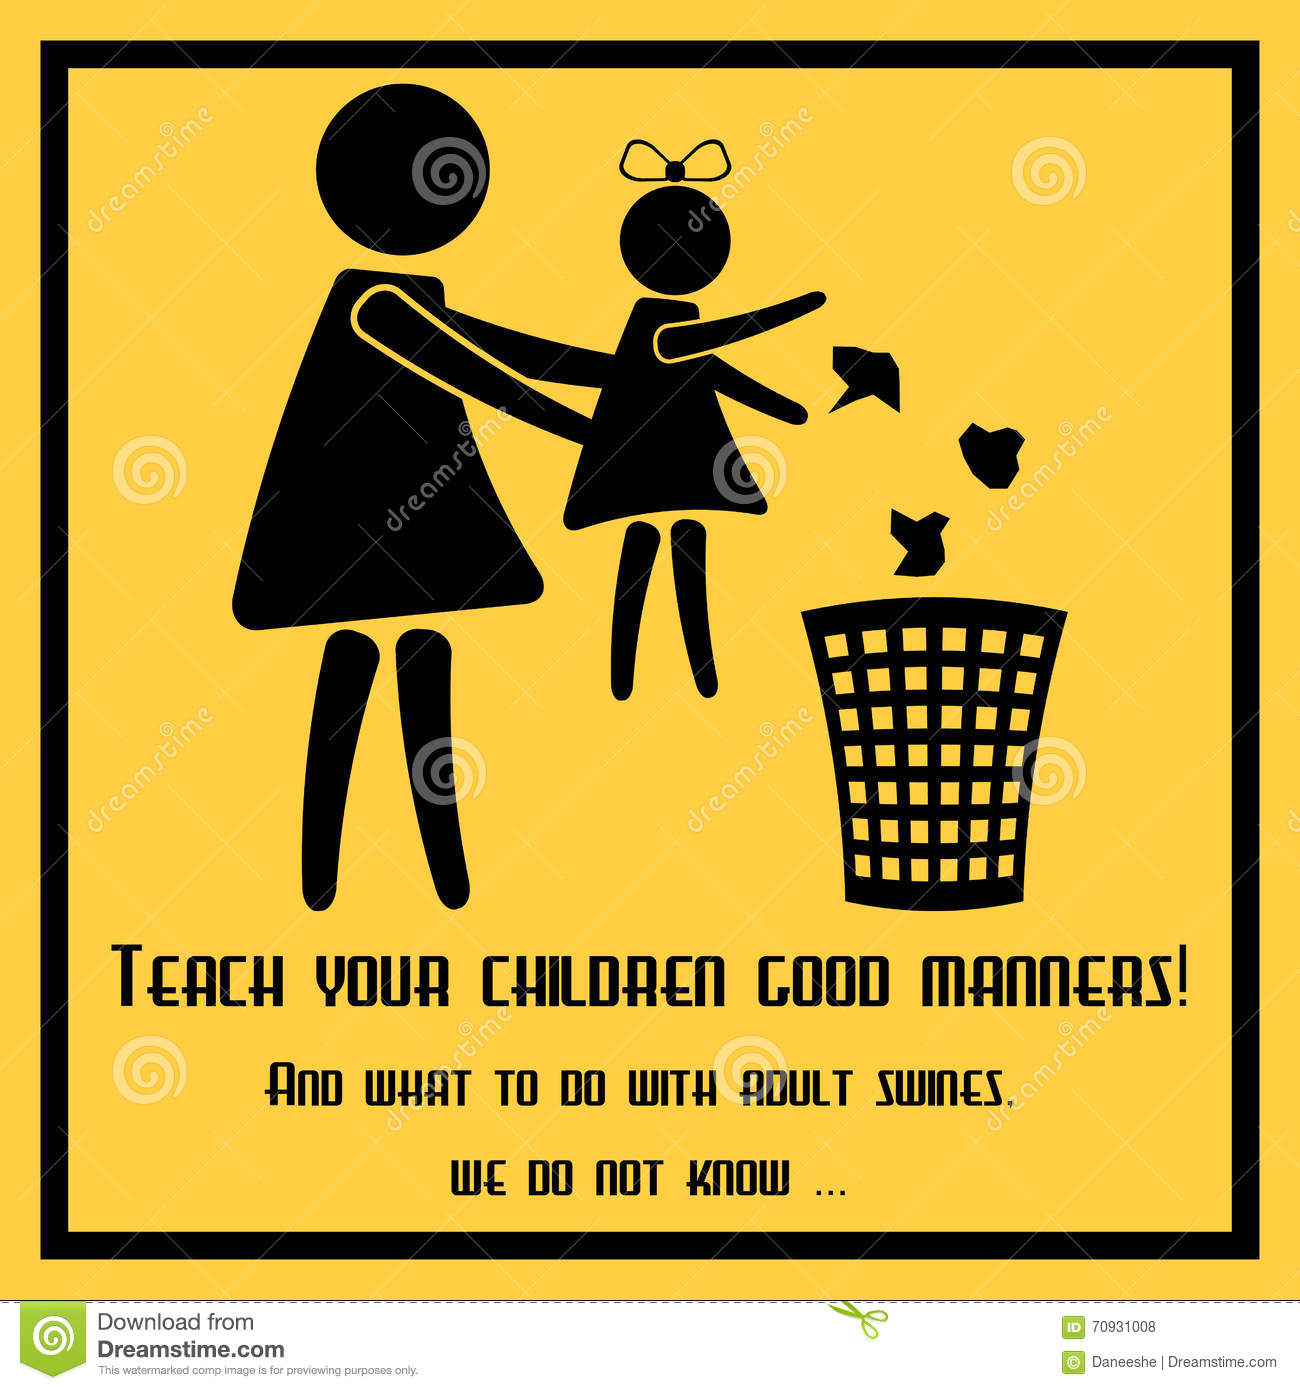 How to Teach Your Child Good Manners